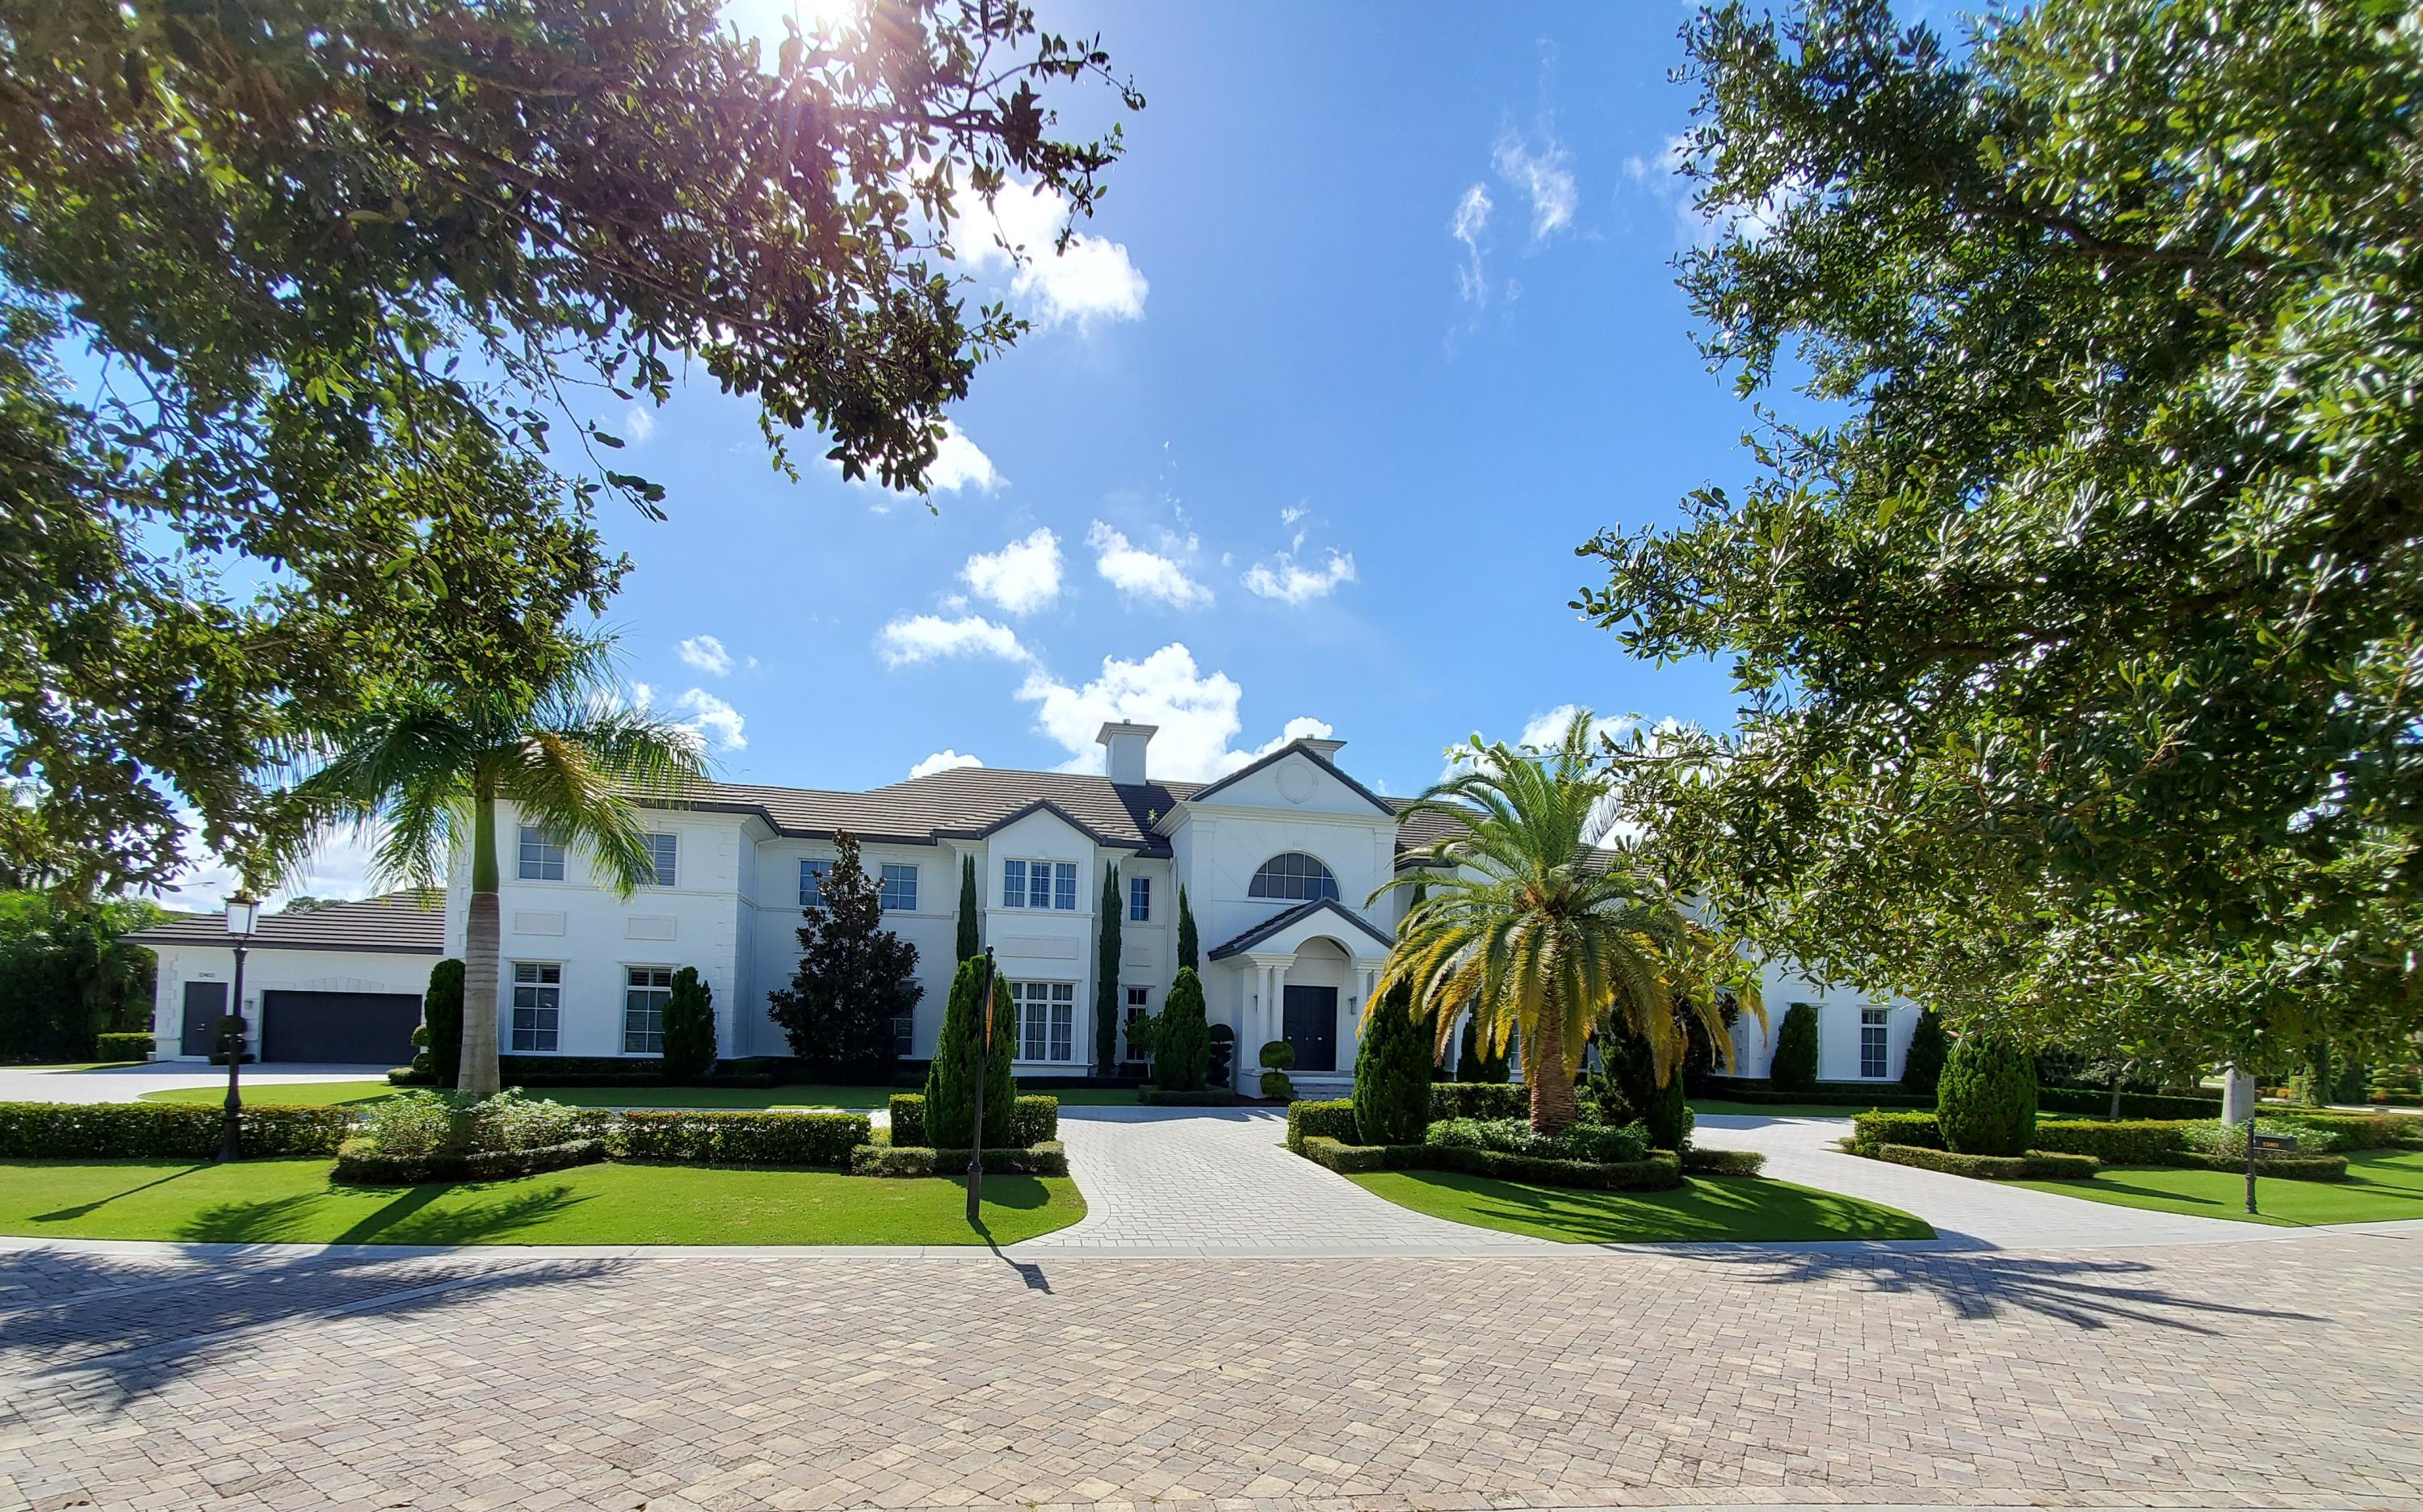 New Home for sale at 12403 Hautree Court in Palm Beach Gardens